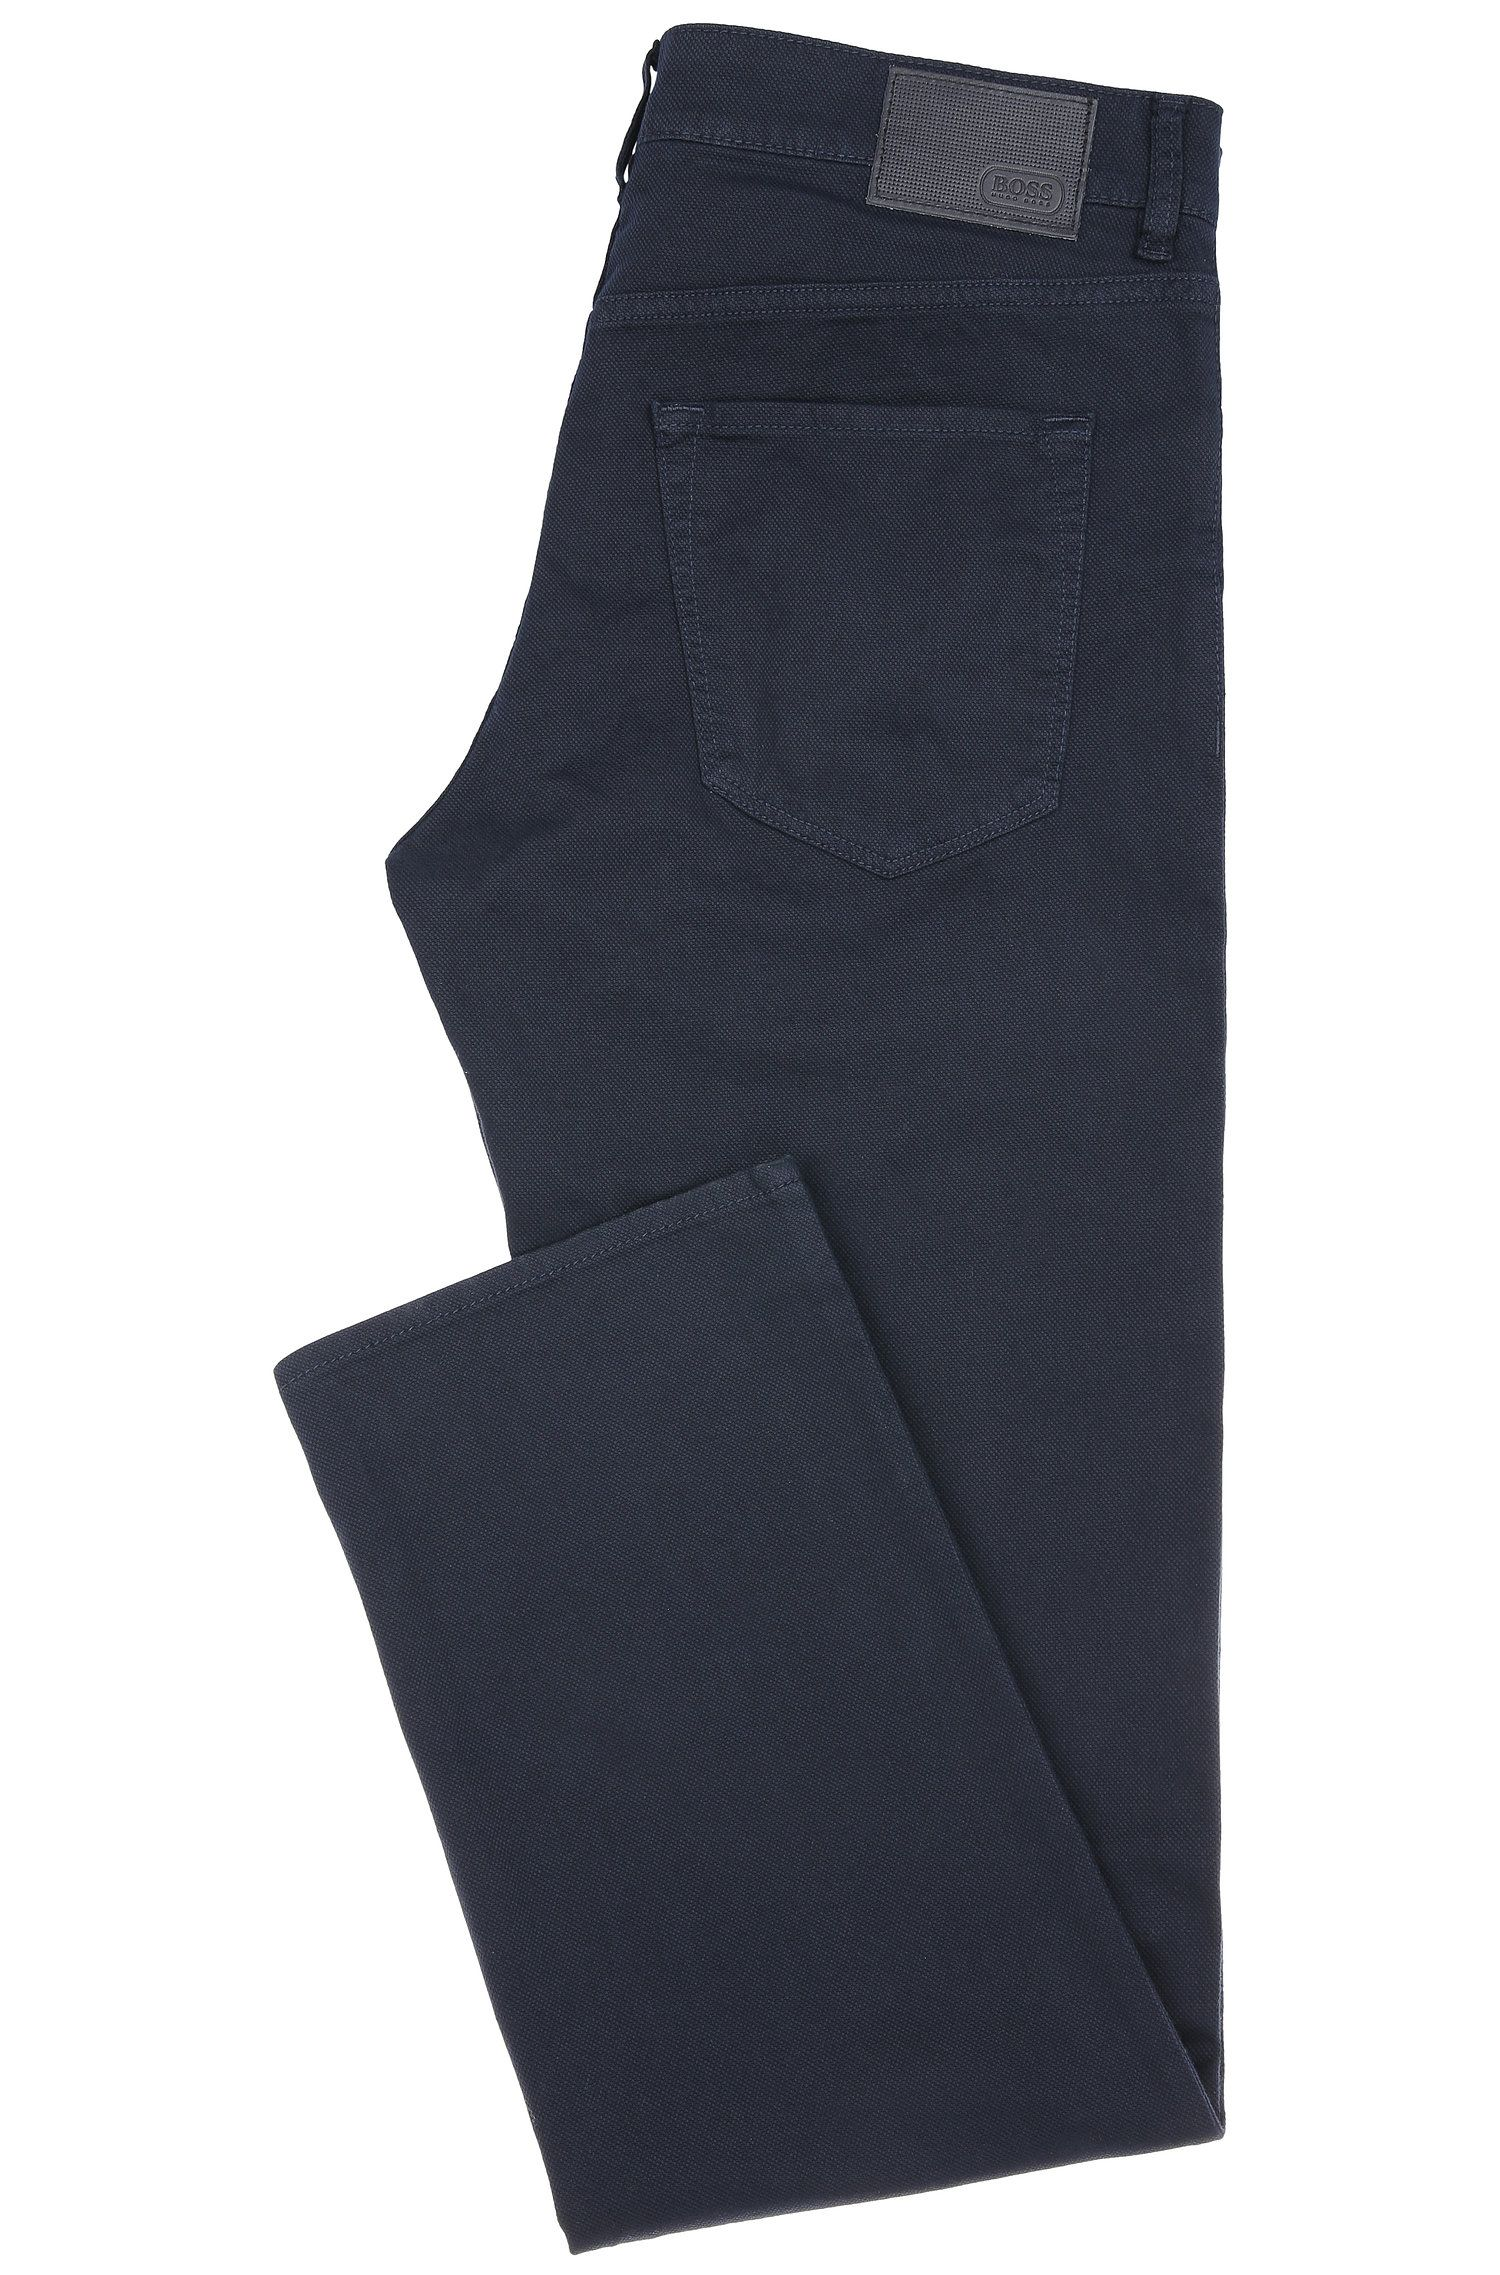 Jeans Regular Fit en coton stretch : « C-Maine1-2-20 », Bleu foncé